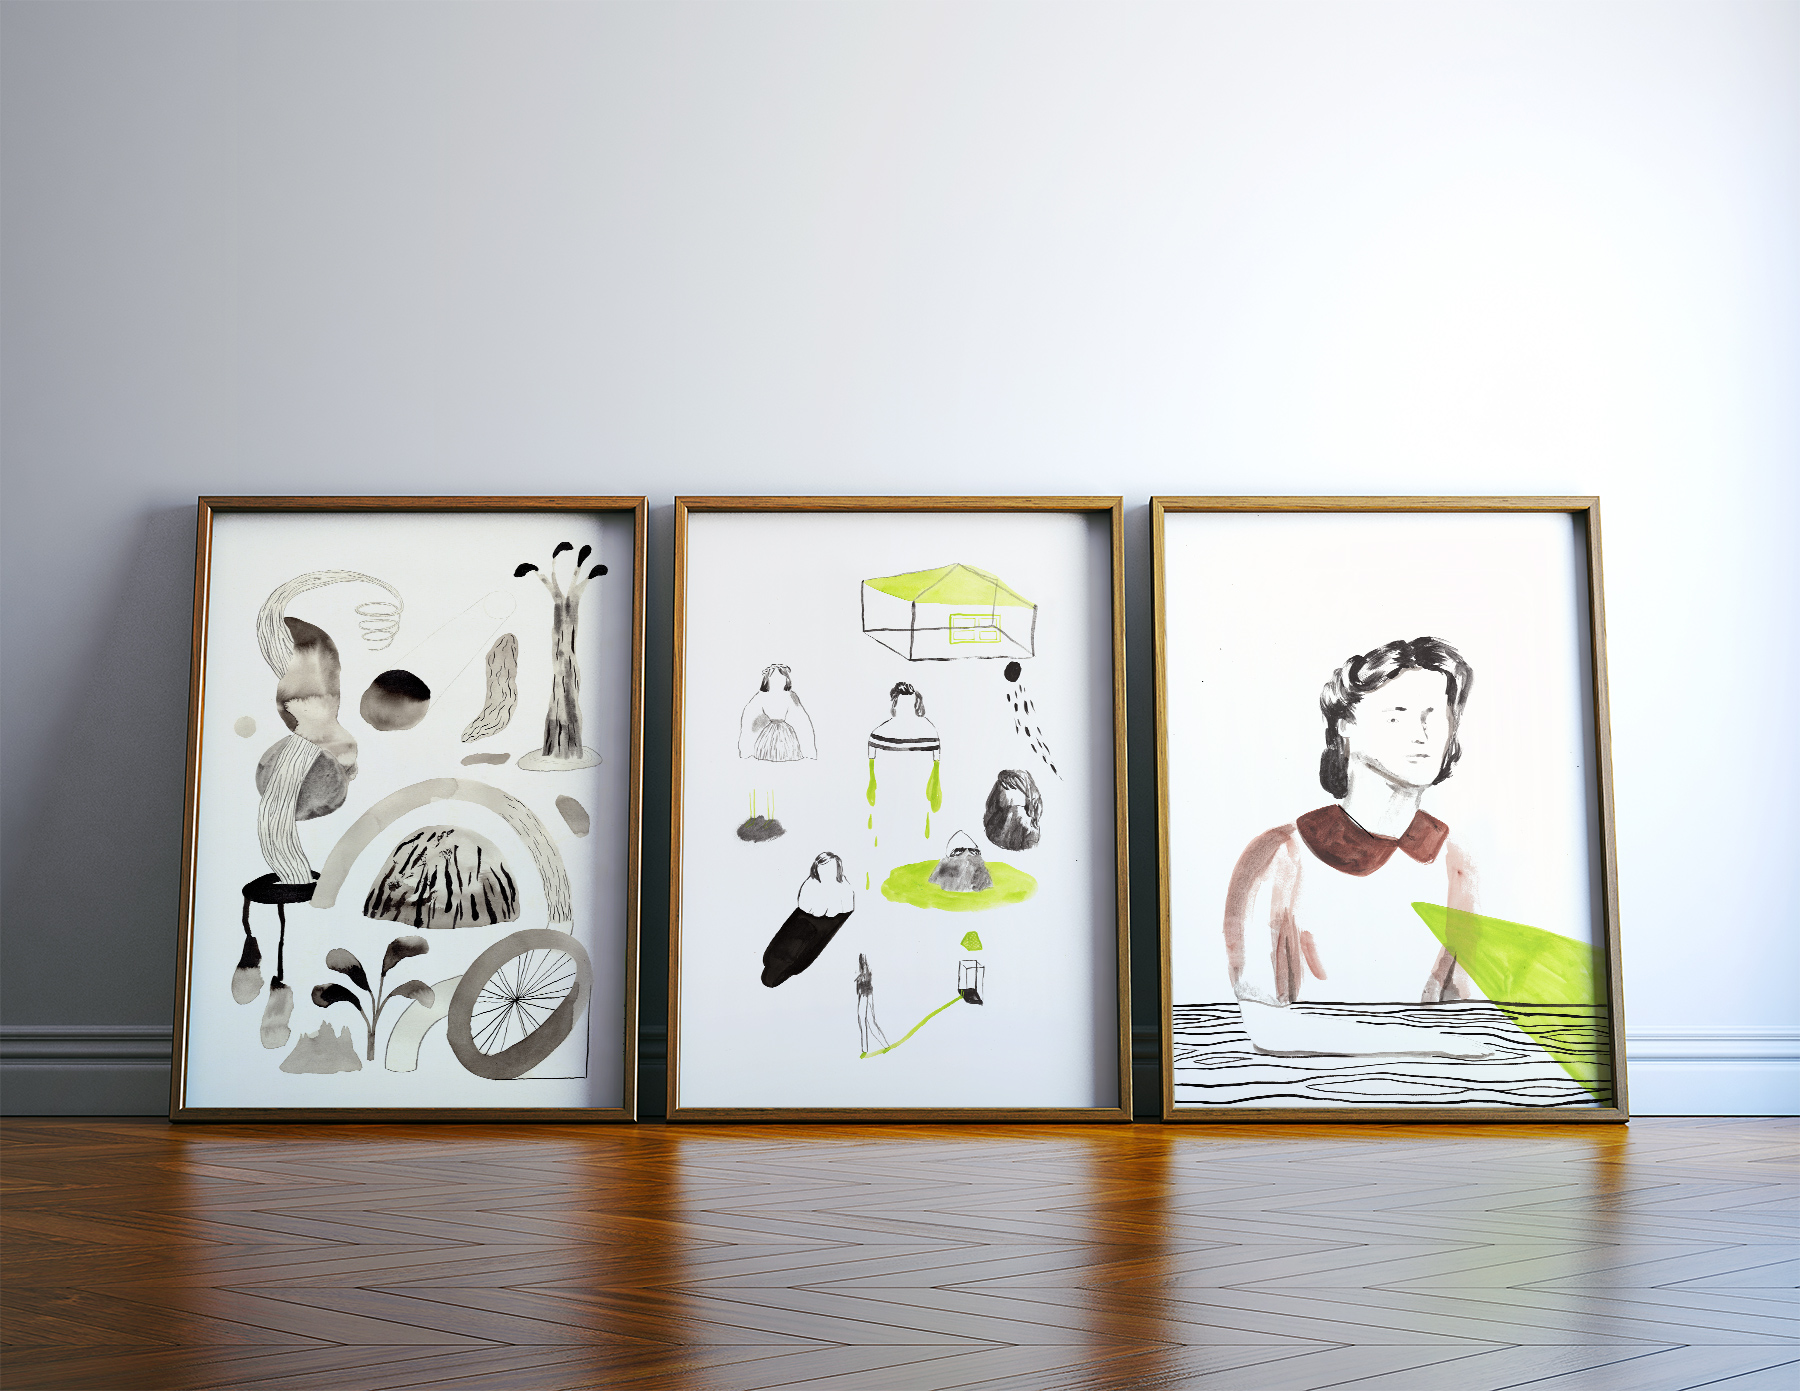 art-prints, gliceé, aesthetic, family-friendly, illustrative, portraiture, bodies, moods, people, black, green, white, ink, paper, buildings, danish, decorative, design, faces, interior, interior-design, men, nordic, scandinavien, women, Buy original high quality art. Paintings, drawings, limited edition prints & posters by talented artists.